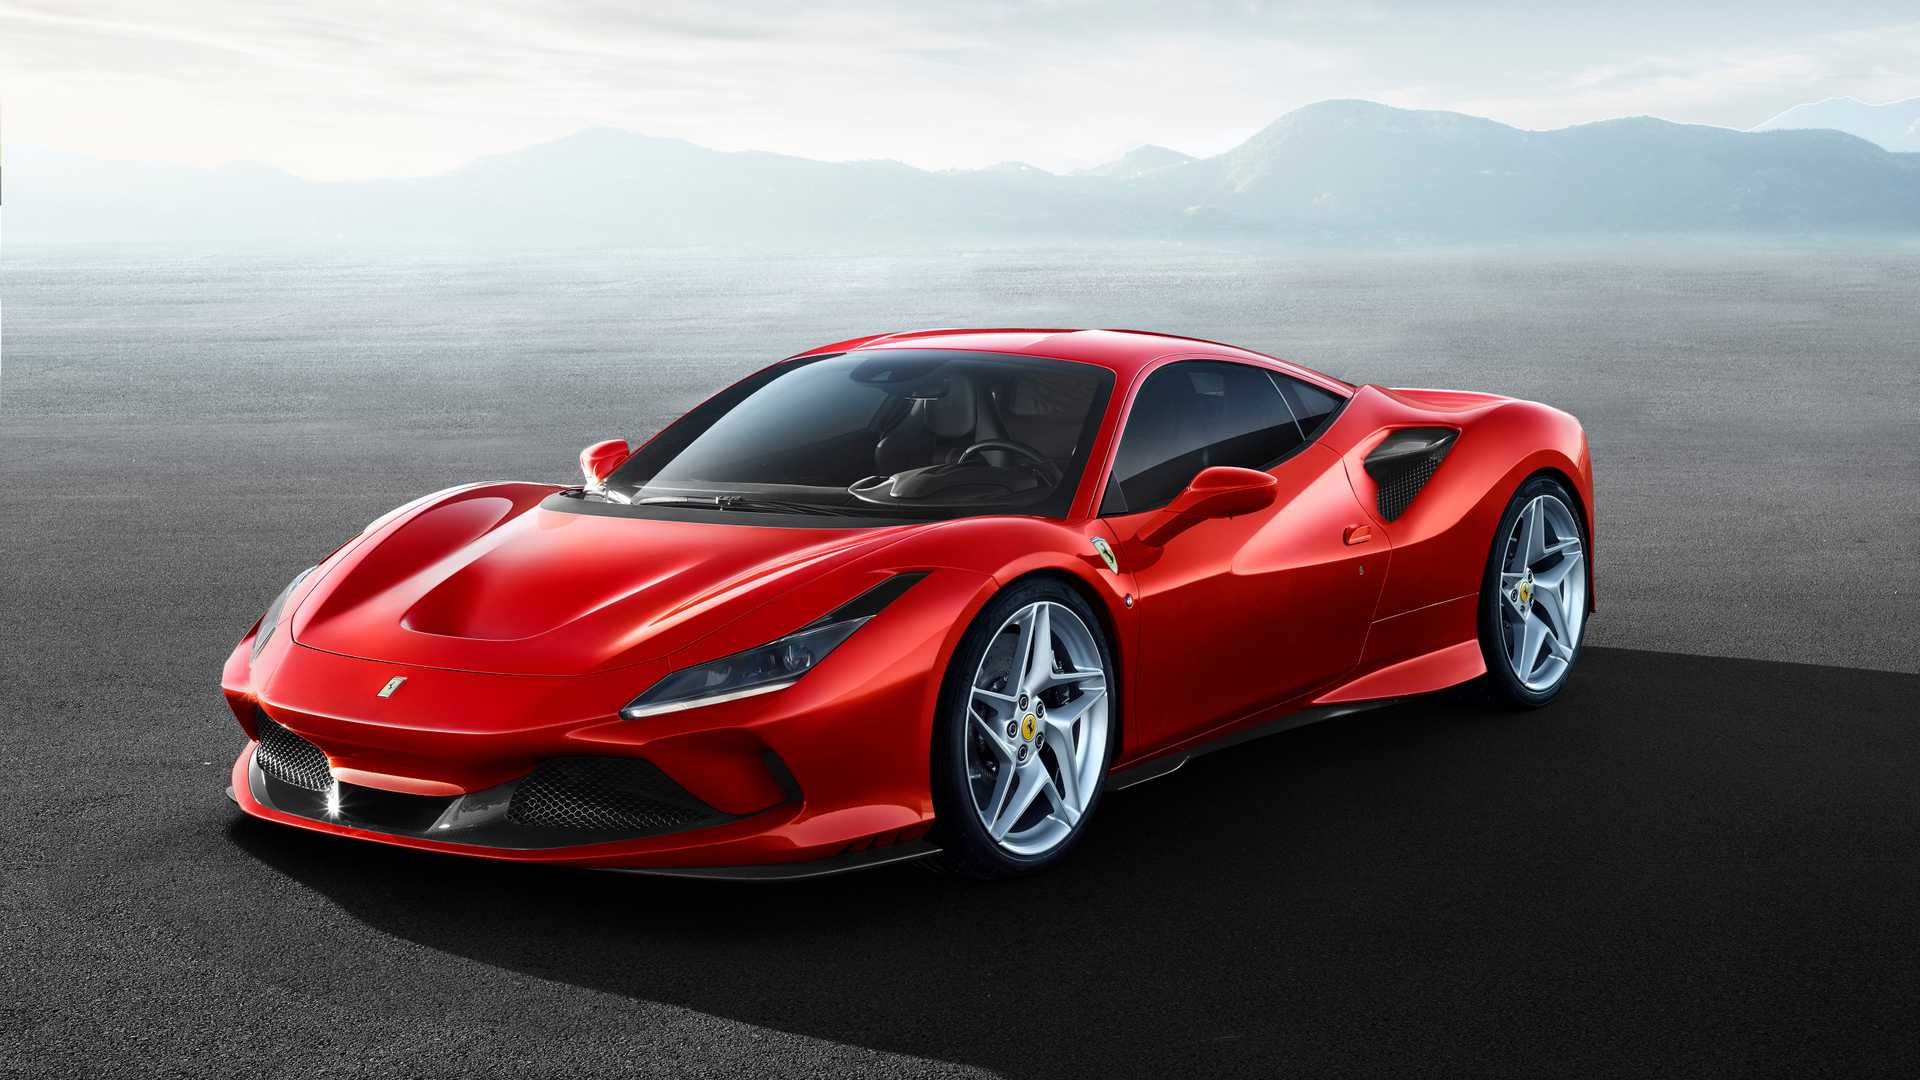 Ferrari SF90 Stradale With A Hybrid Drivetrain Launched